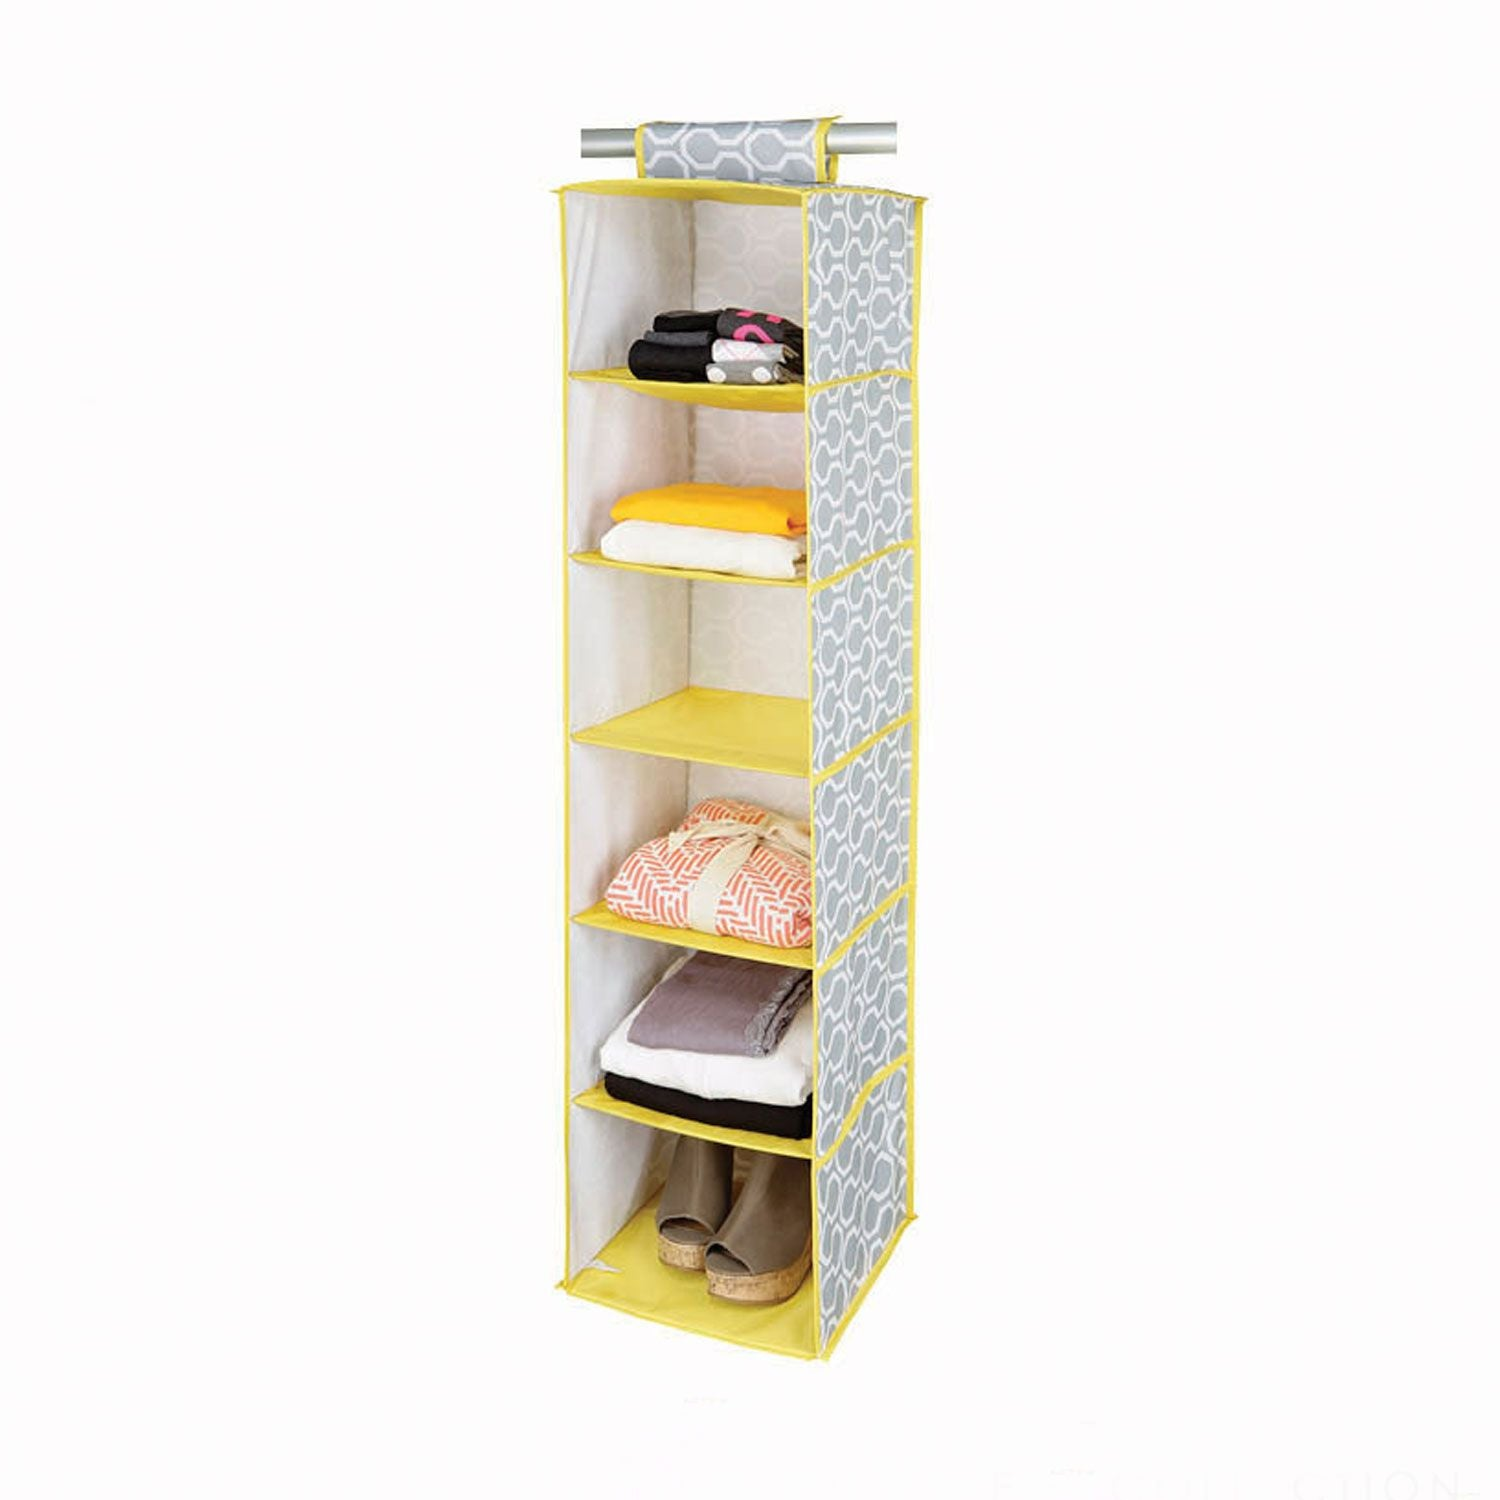 6 Shelf Sweater Organizer